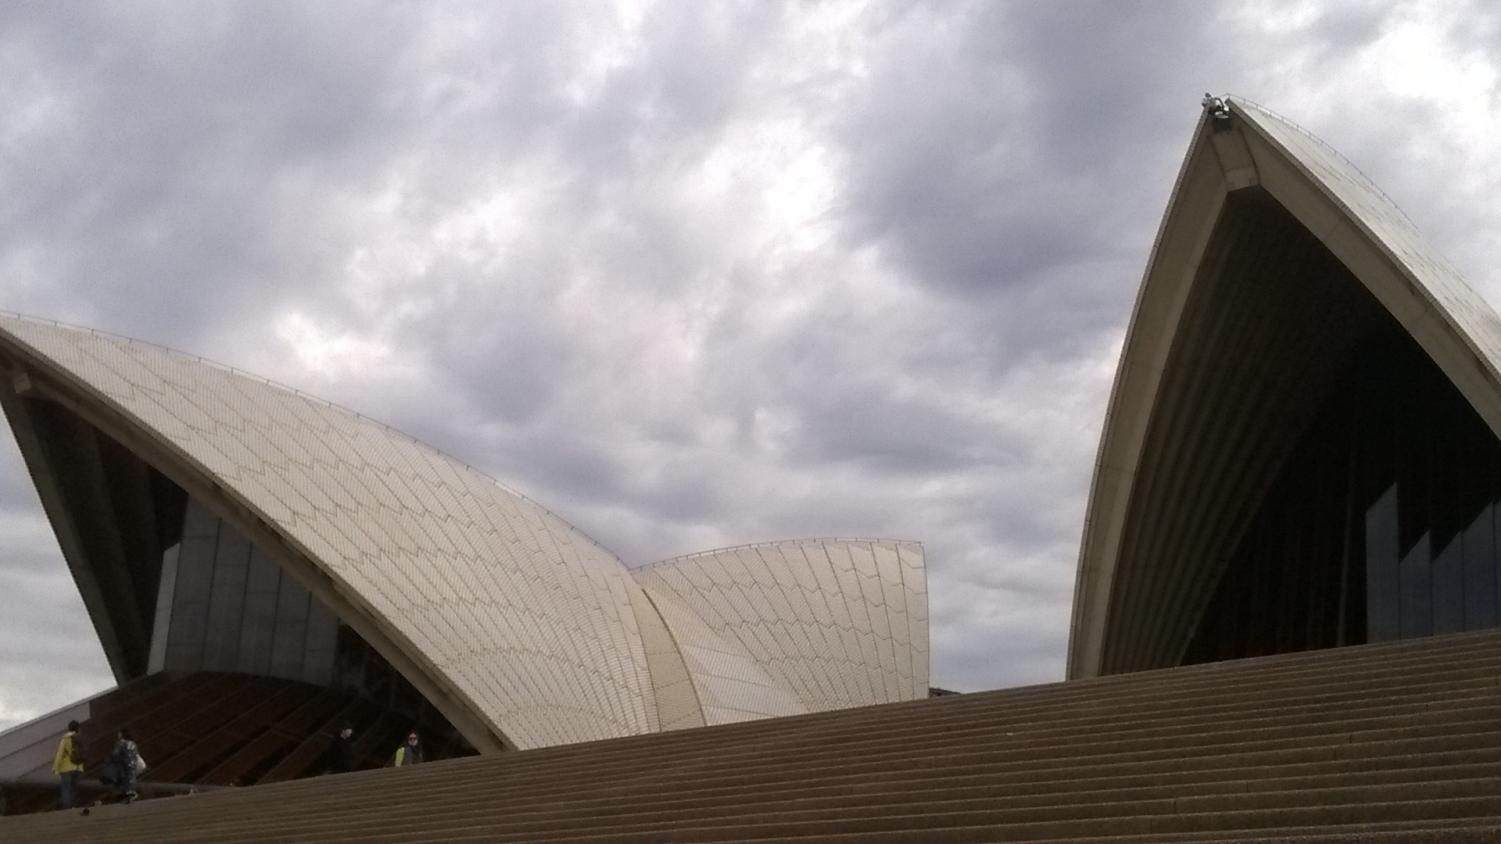 The Sydney Opera House Photographer- Hana Diwan